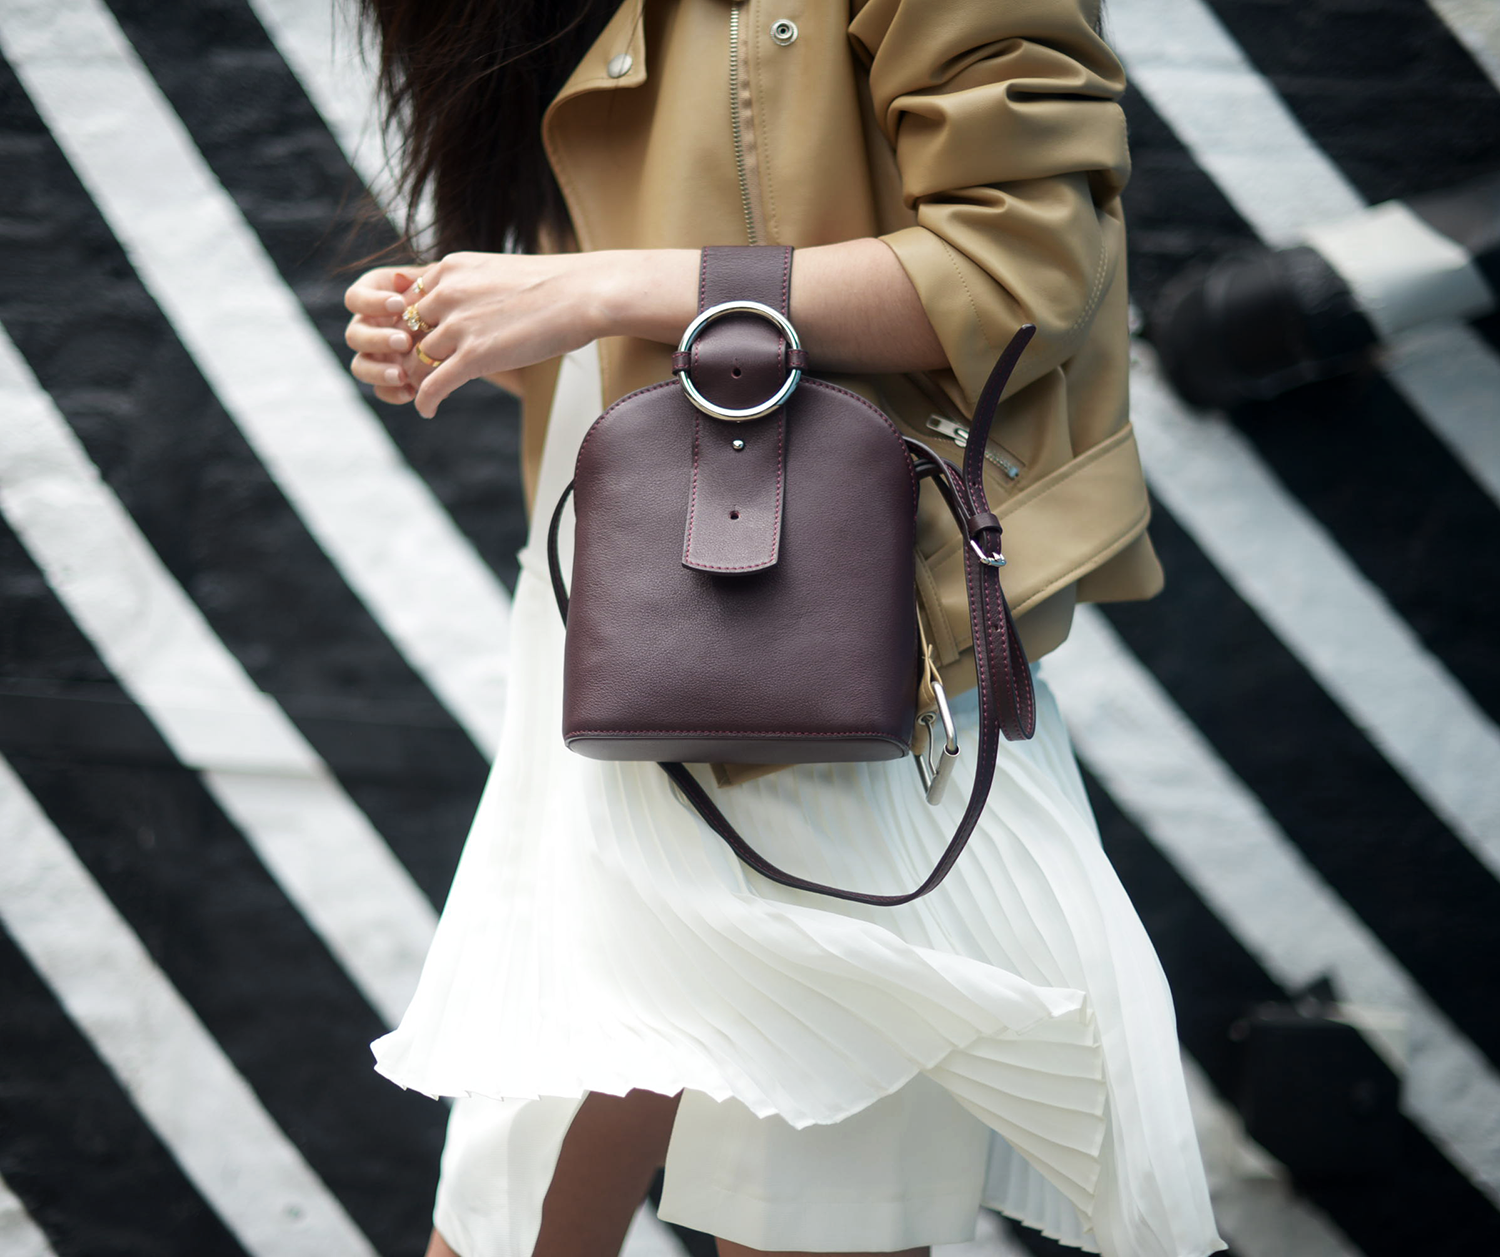 Camel Leather Jacket and Pleated Dress with Parisa Wang NYC Bag | FOREVERVANNY.com